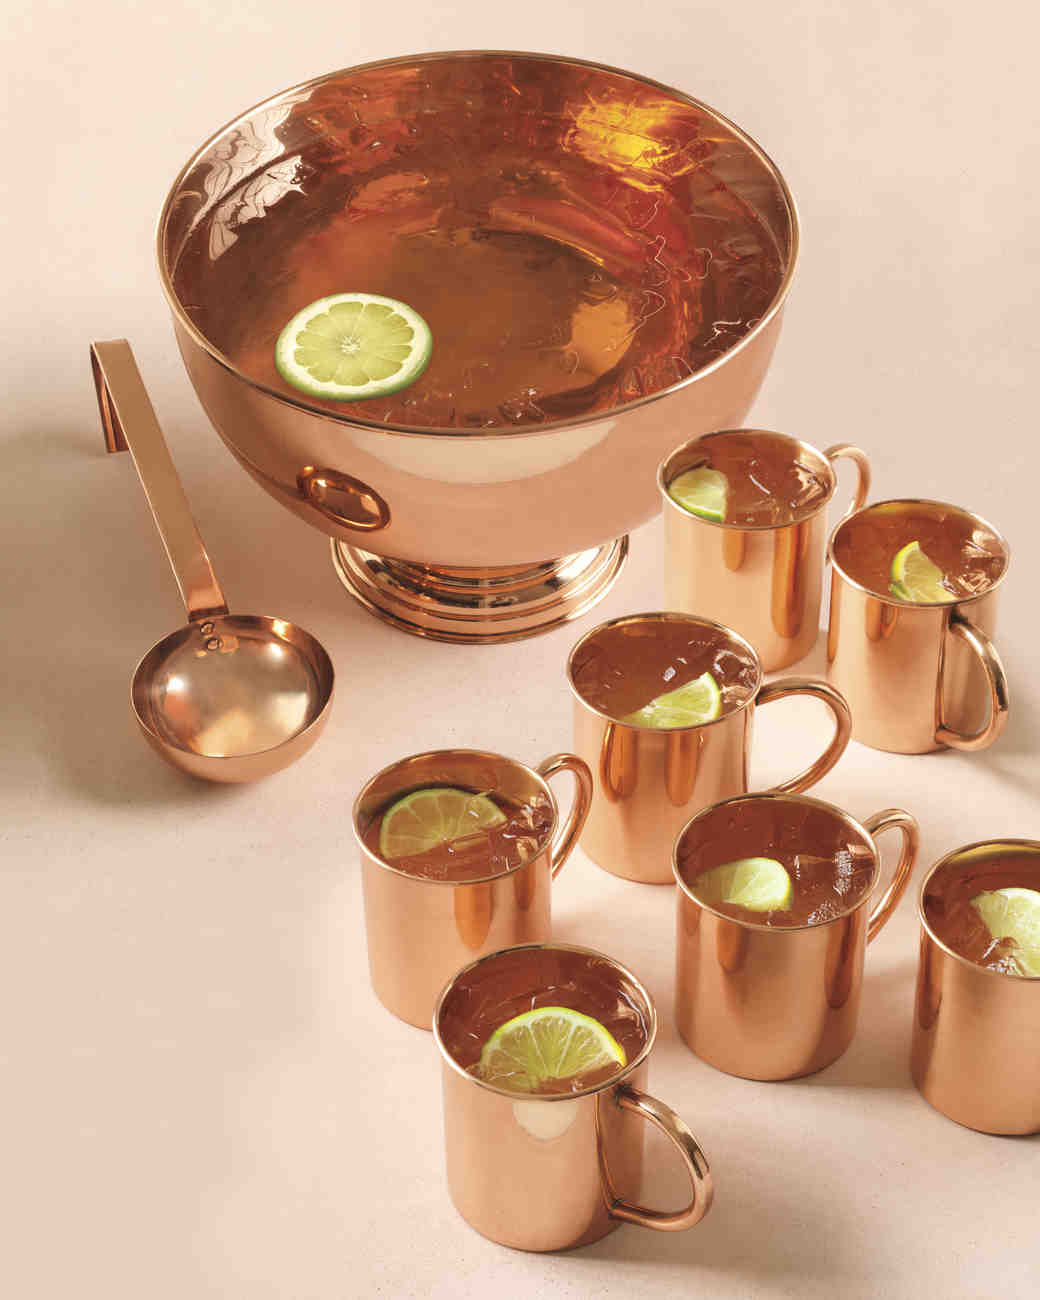 copper-punch-bowl-background-0032-d111902-comp.jpg